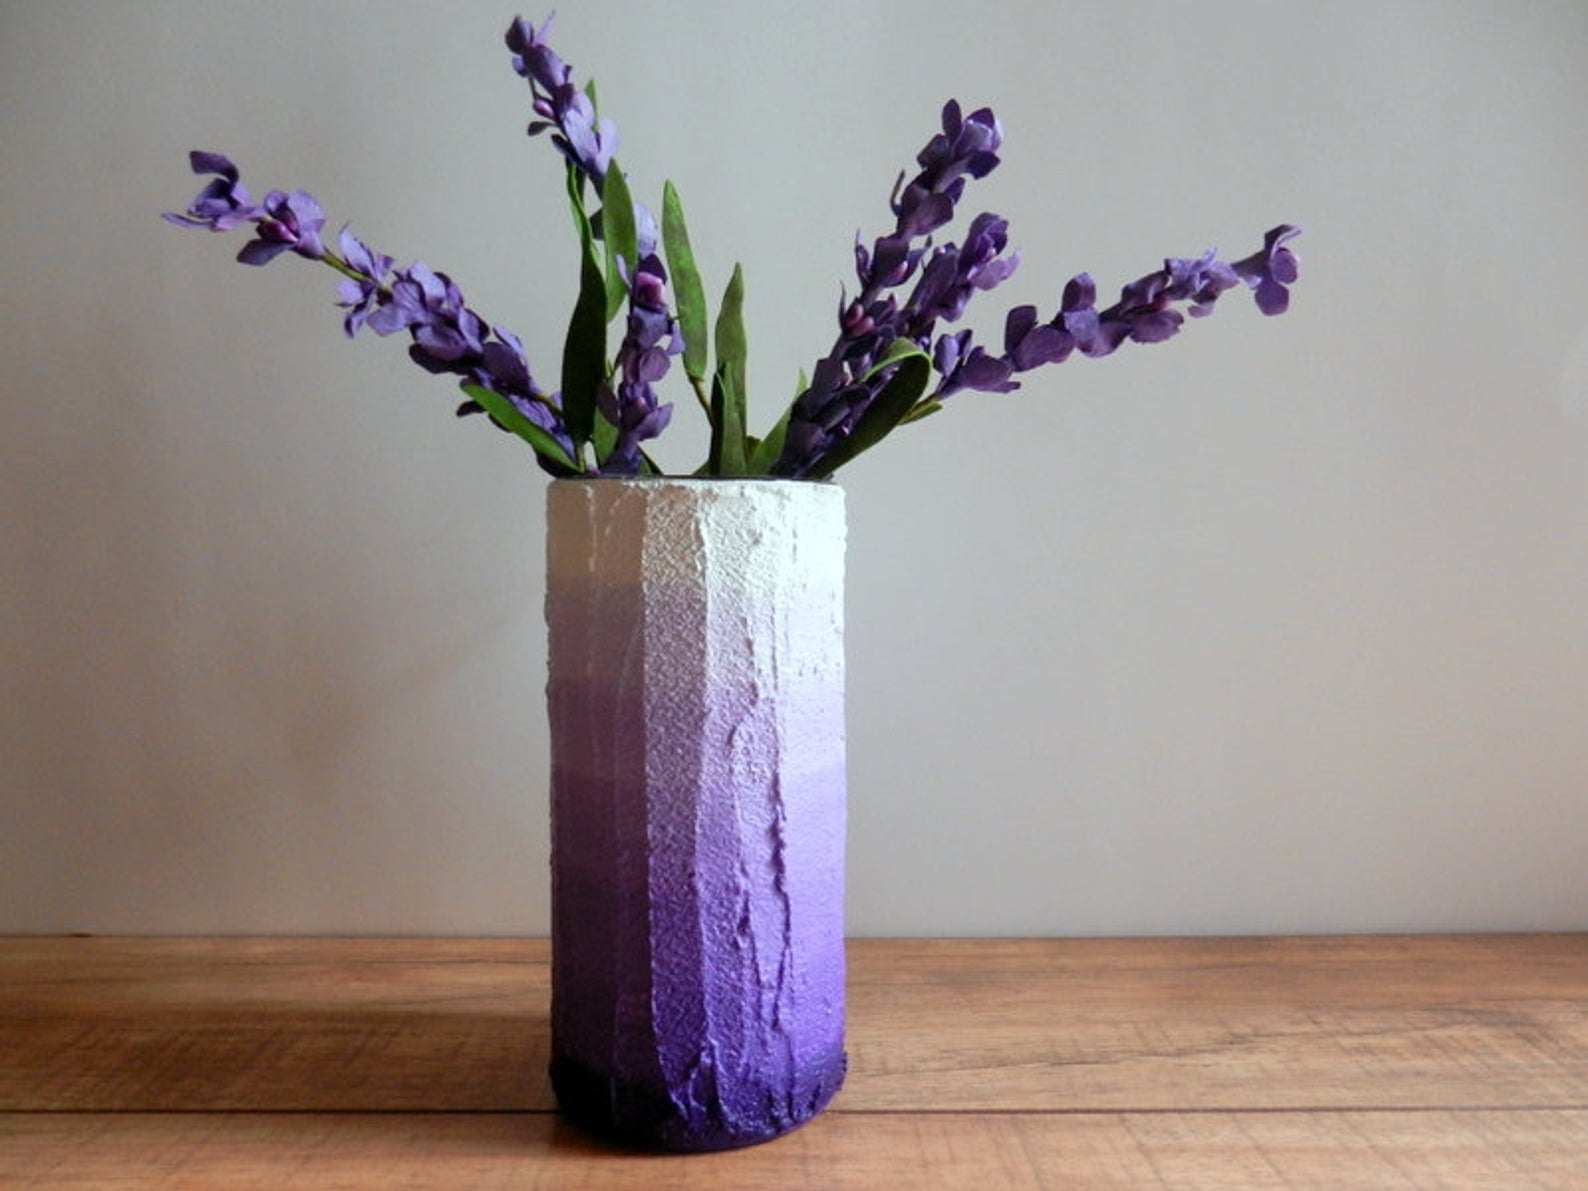 purple ombre vase with flowers in it